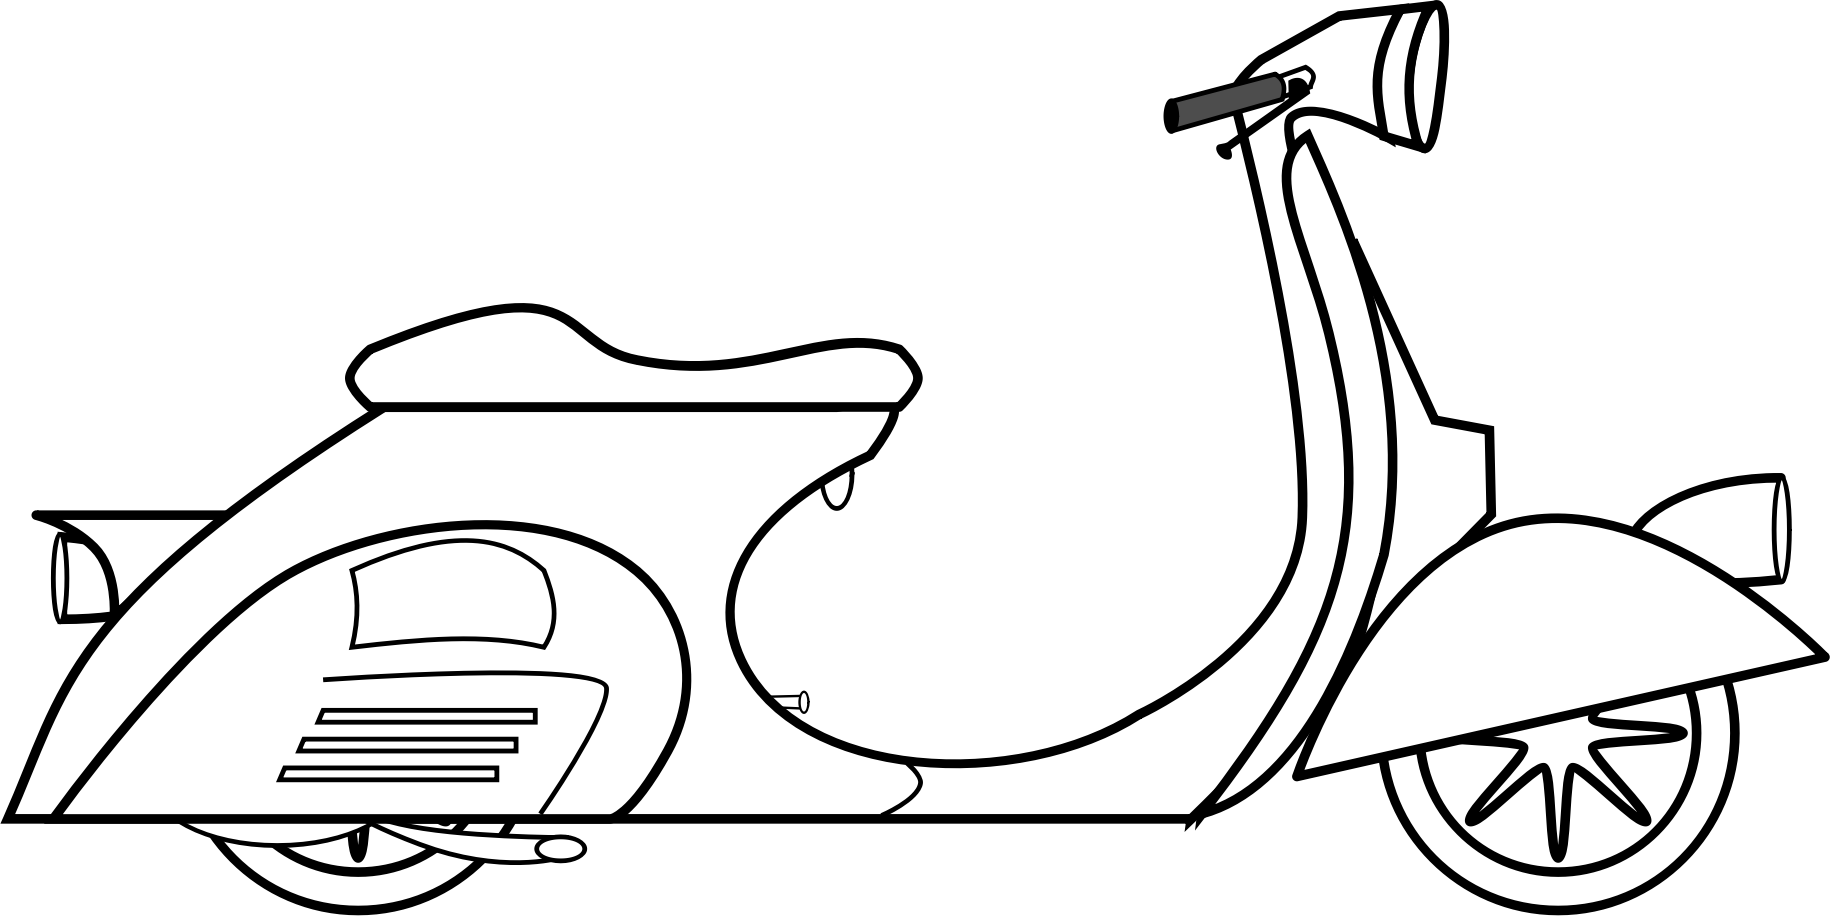 Scooter vector black and white. Graphic transparent stock